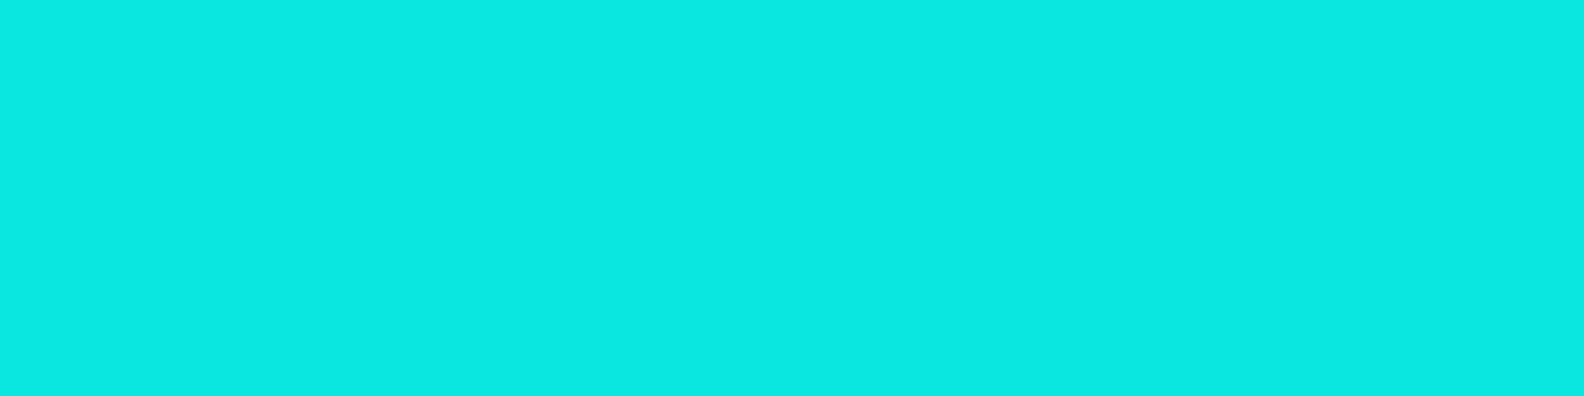 1584x396 Bright Turquoise Solid Color Background